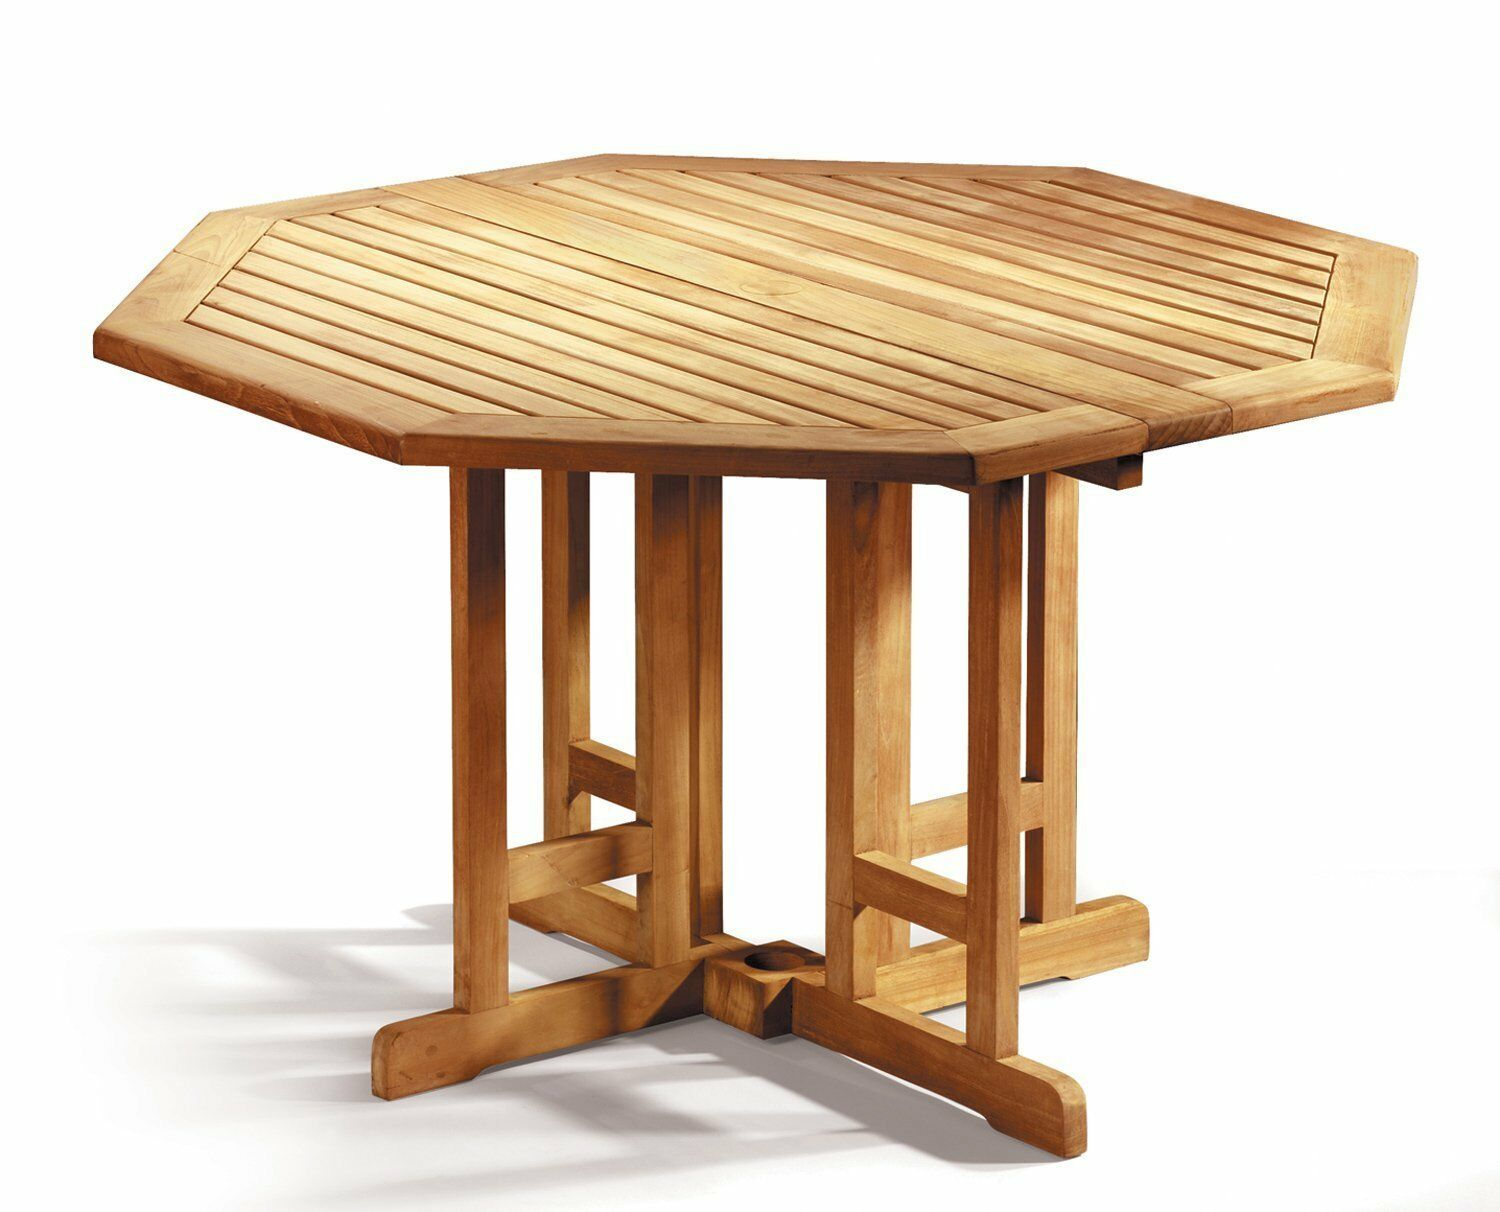 Berwick Drop Leaf Garden Table 1 2m